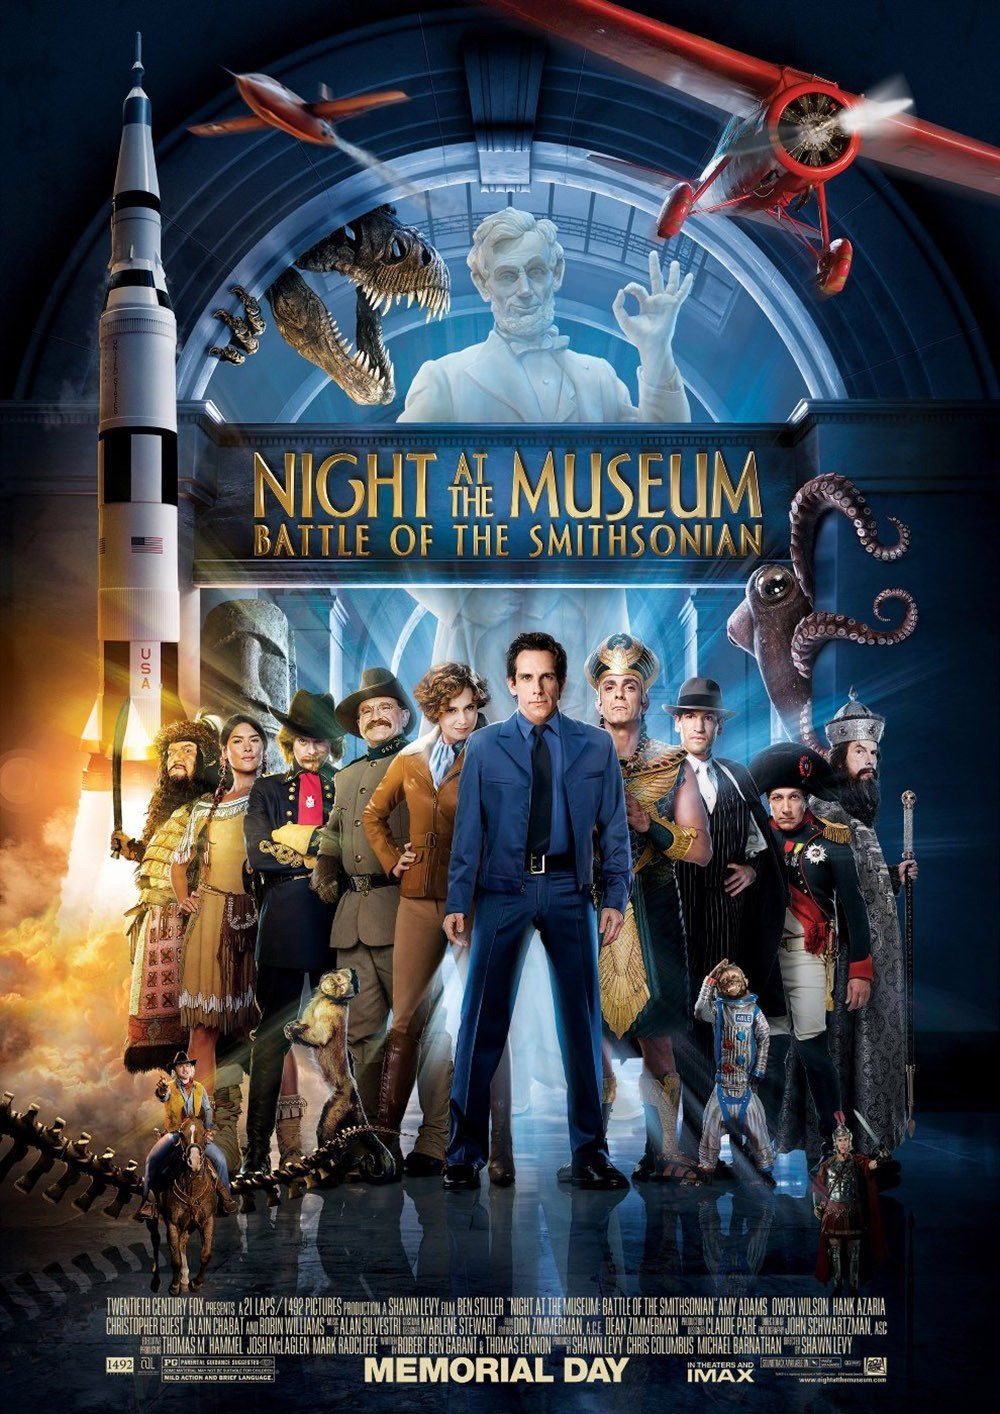 night-at-the-museum-2-battle-of-the-smithsonian.jpg